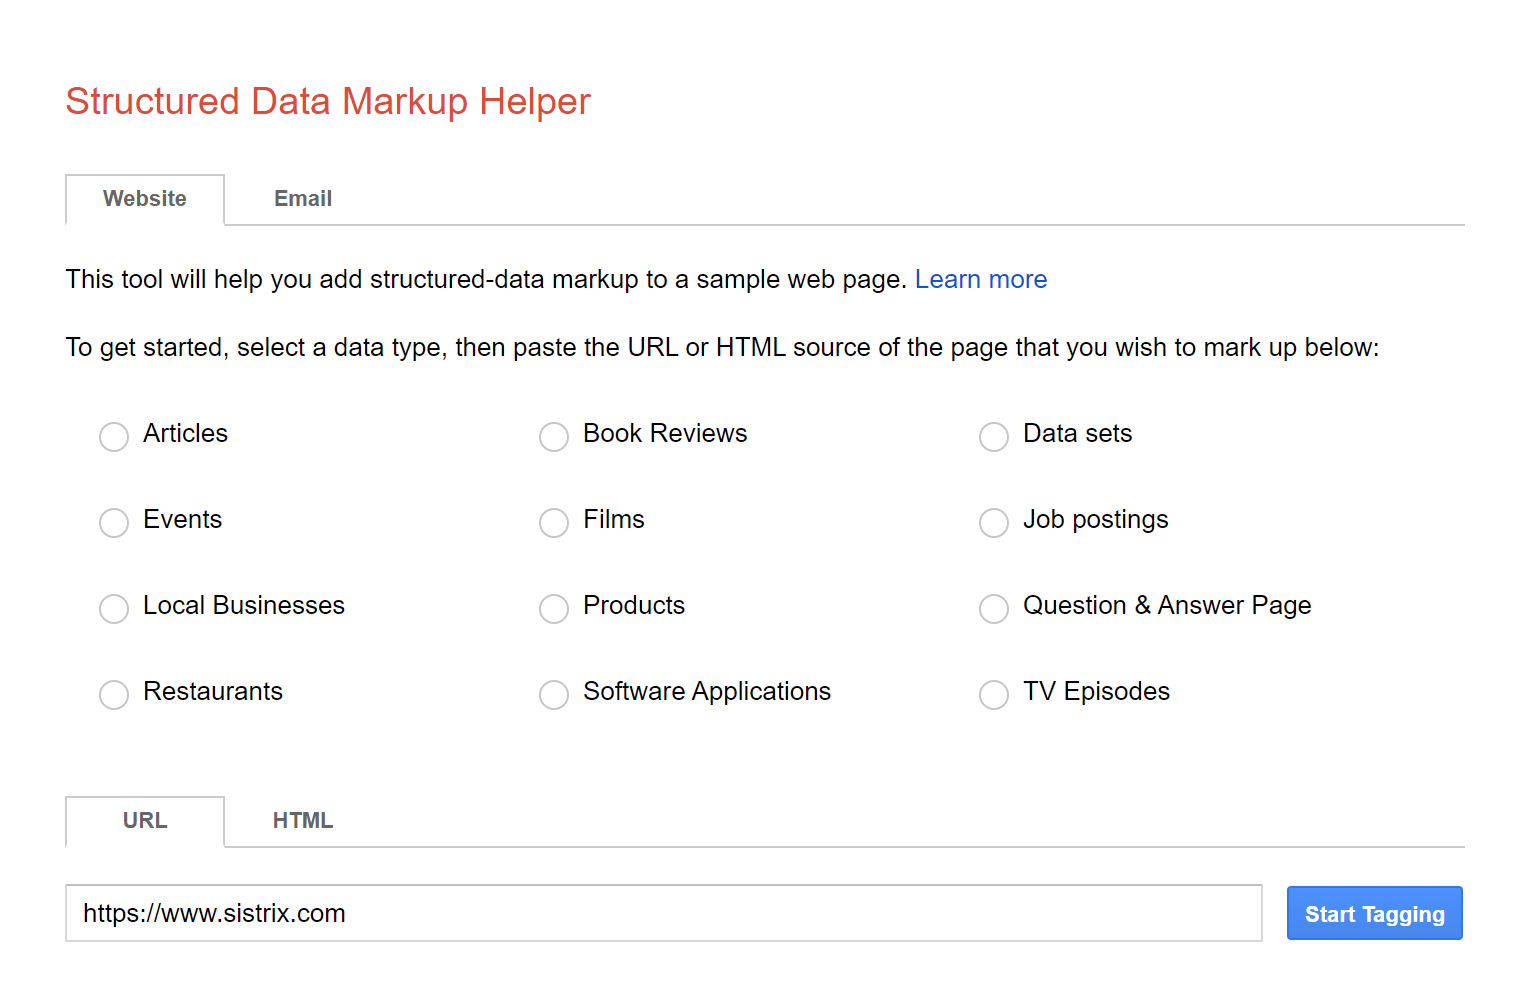 Image of the structured data markup helper